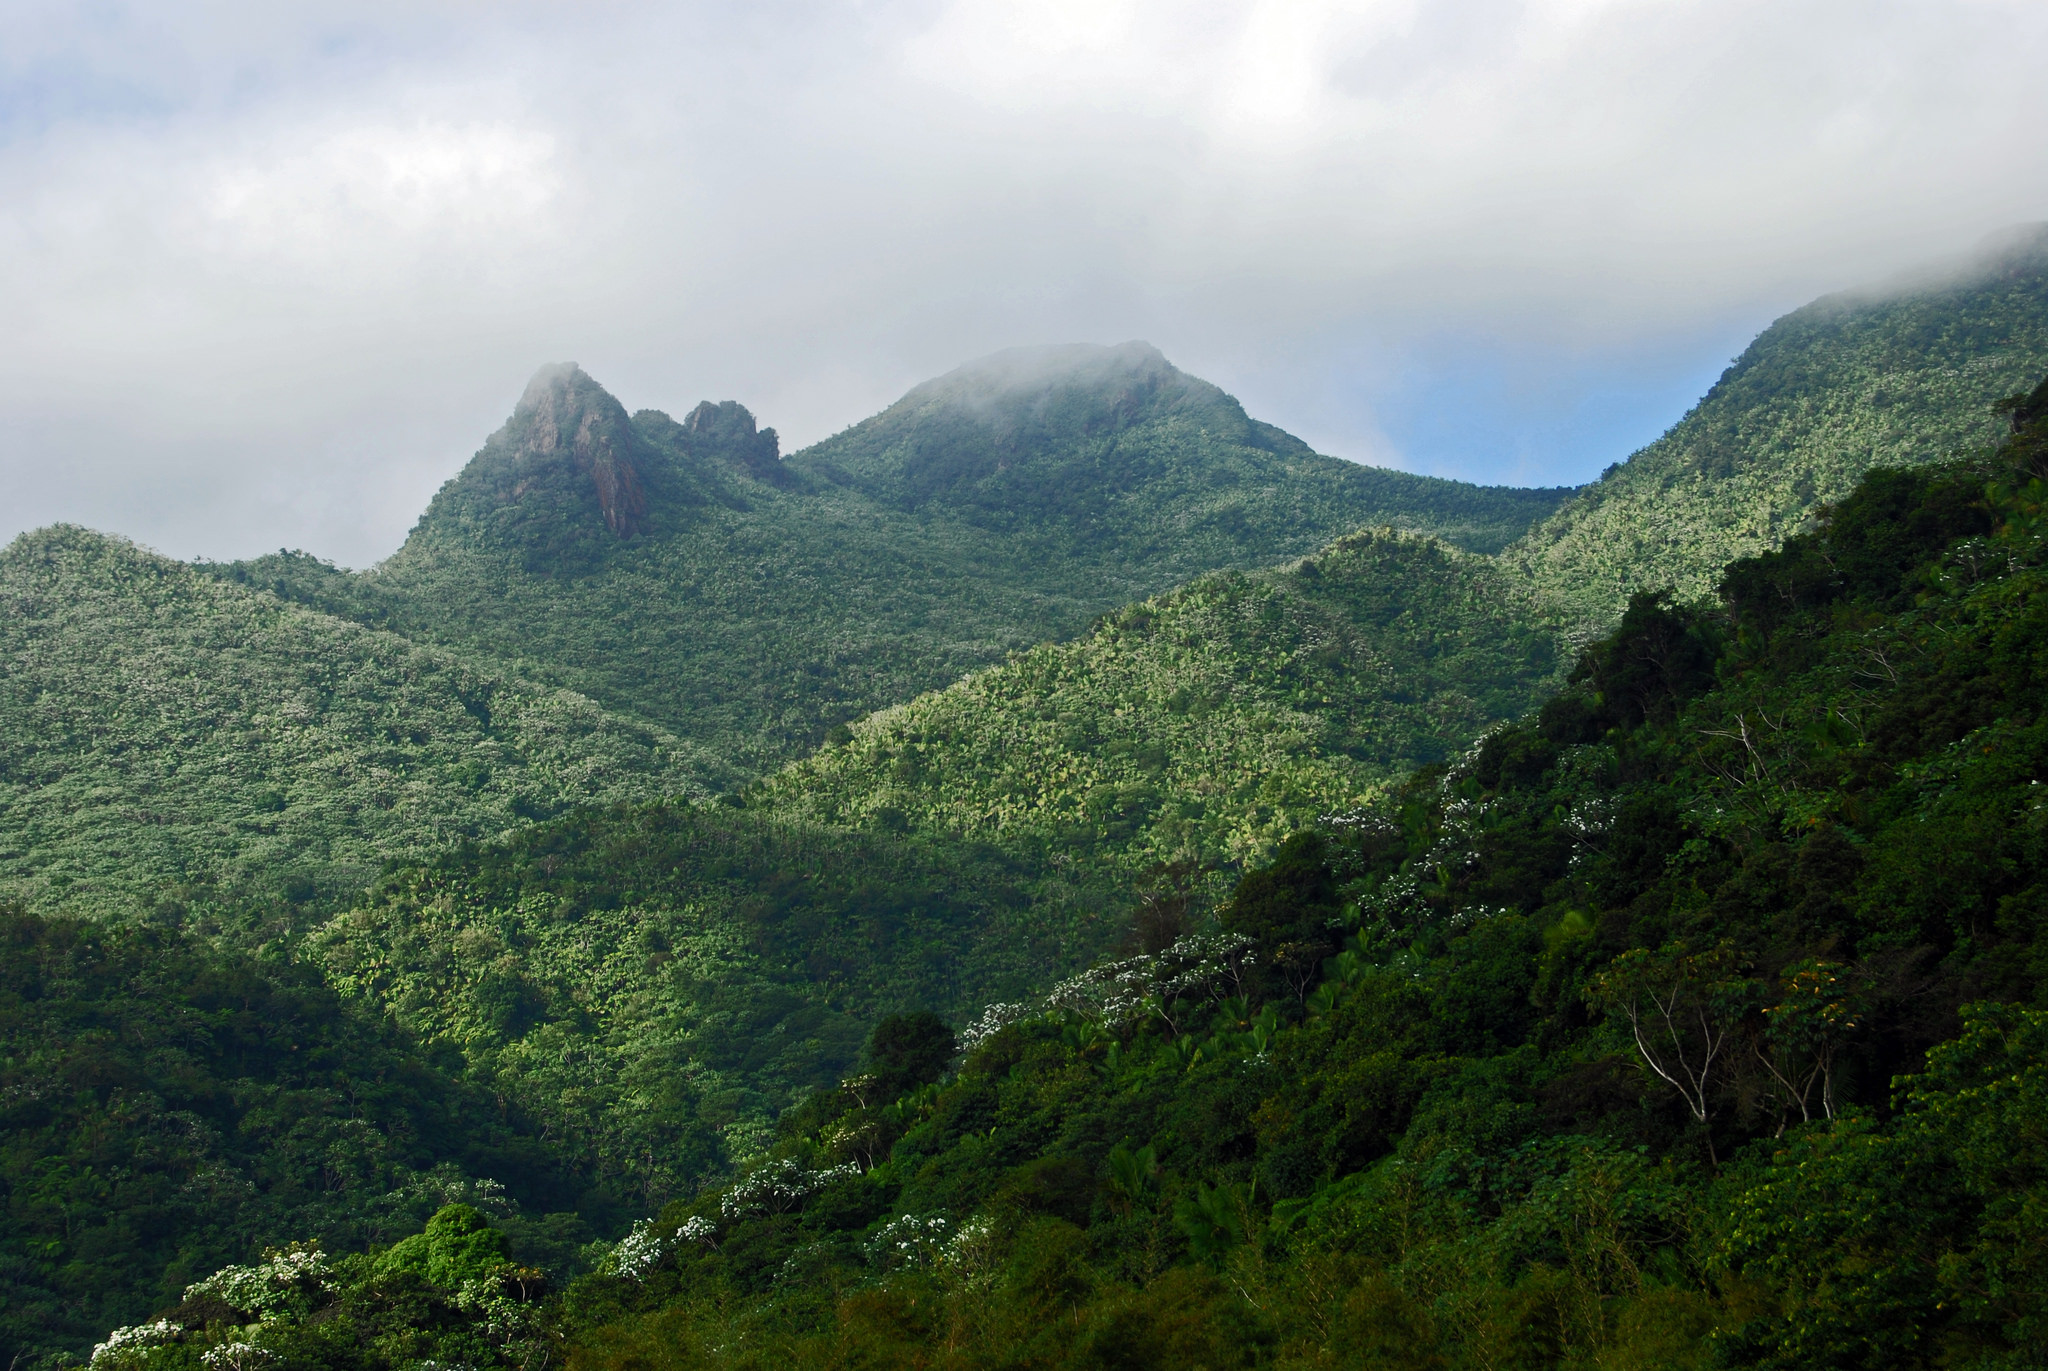 Puerto Rico's El Yunque National Forest in 2014, before this year's hurricanes damaged the forest canopy. Photo credit: Harvey Barrison/via Flickr [Licensed under CC BY 2.0]